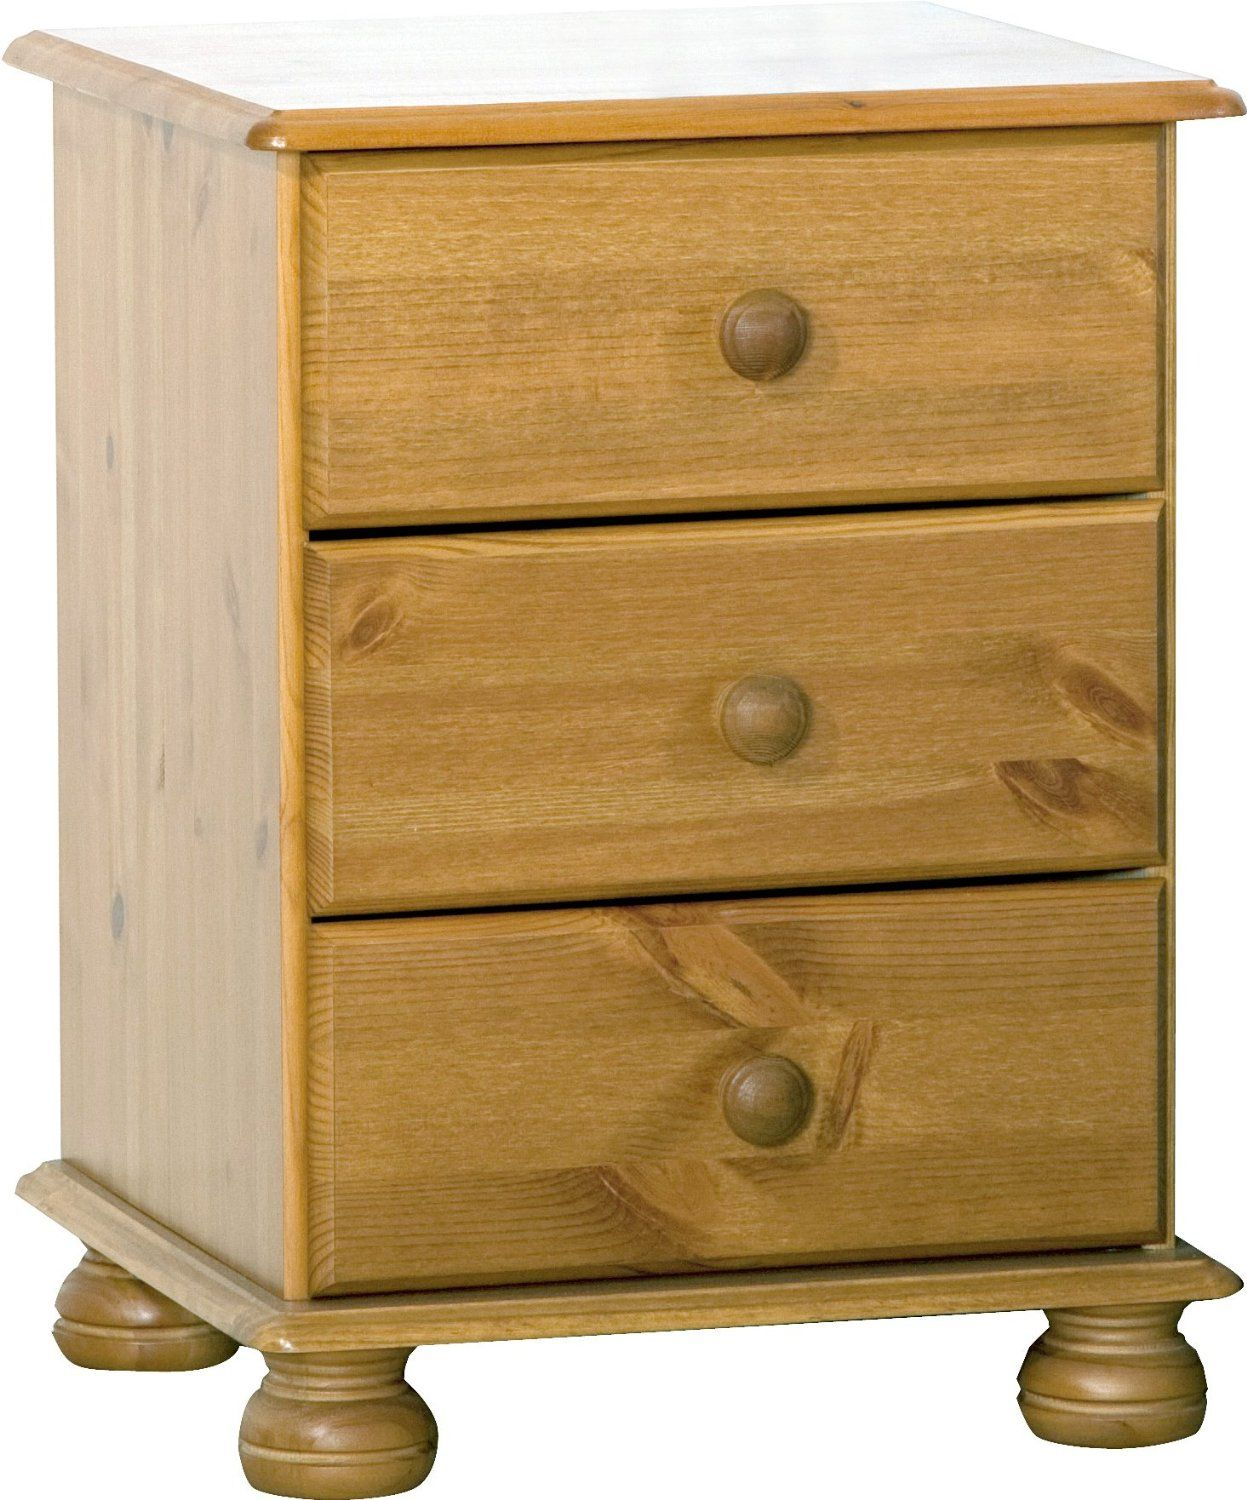 1000 images about bedroom on pinterest pine bedside tables chest of drawers and - Bedside Table Cheap